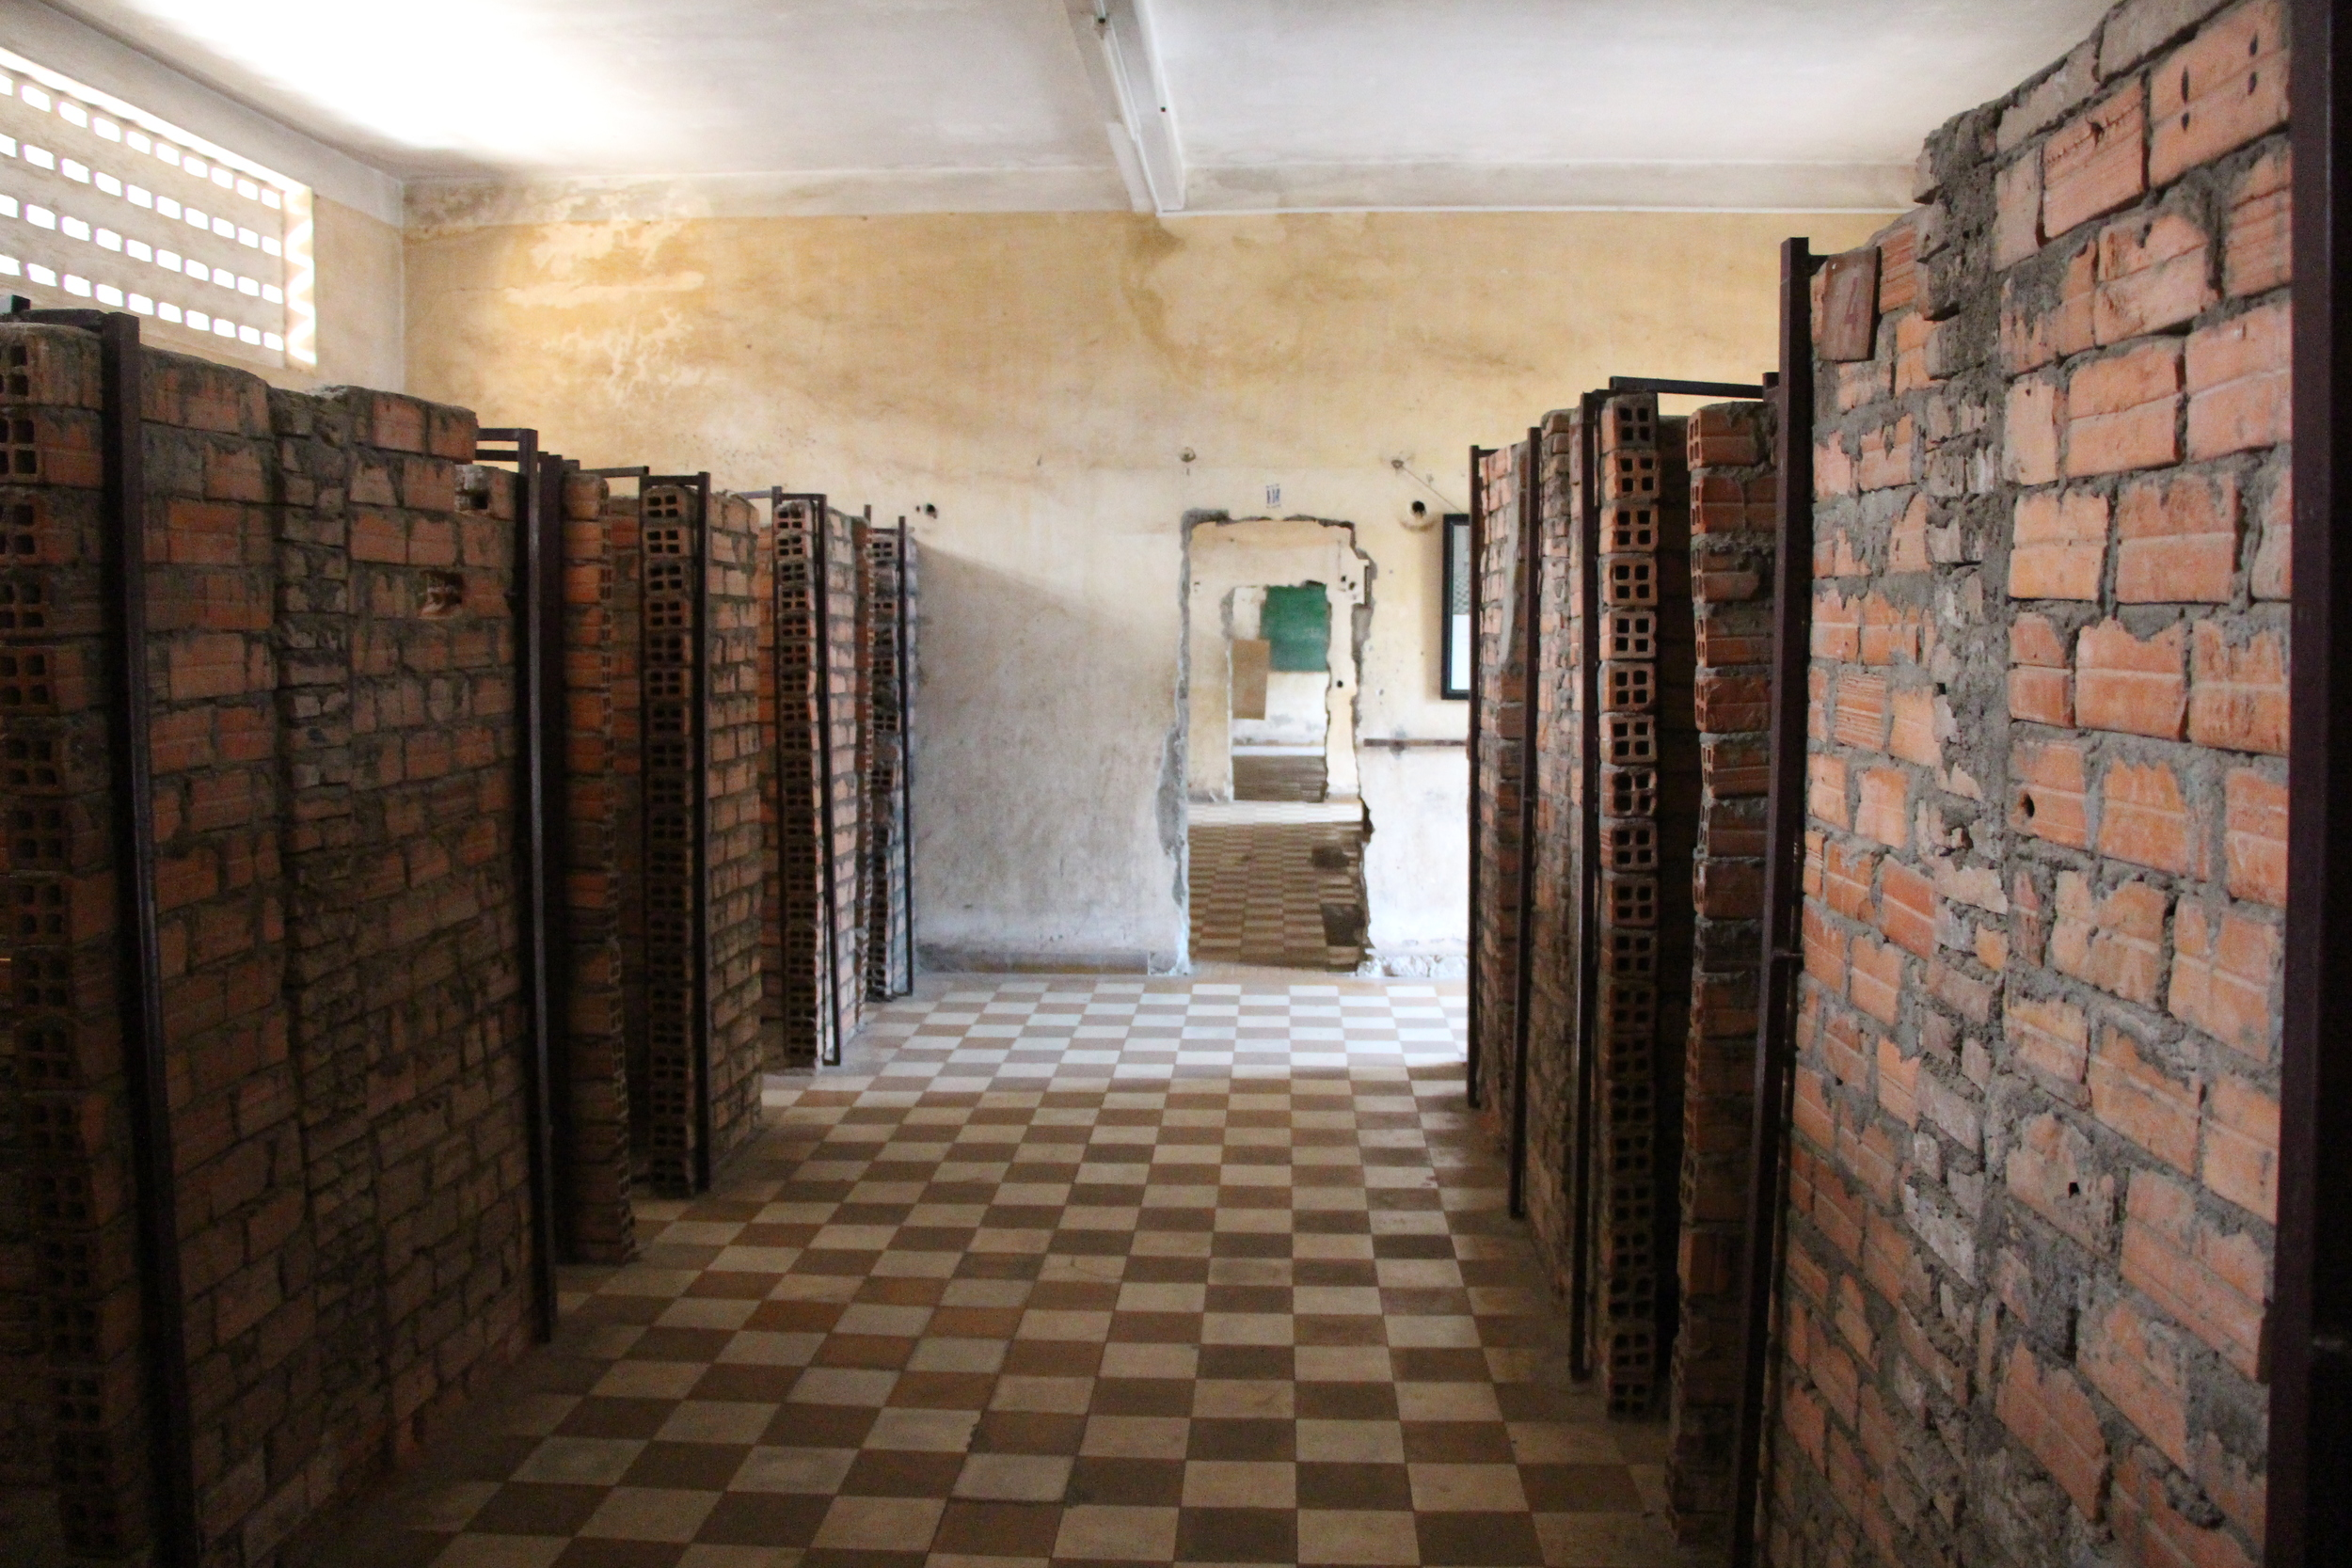 Most prisoners were held in small brick cells like these in long blocks attached to one another.